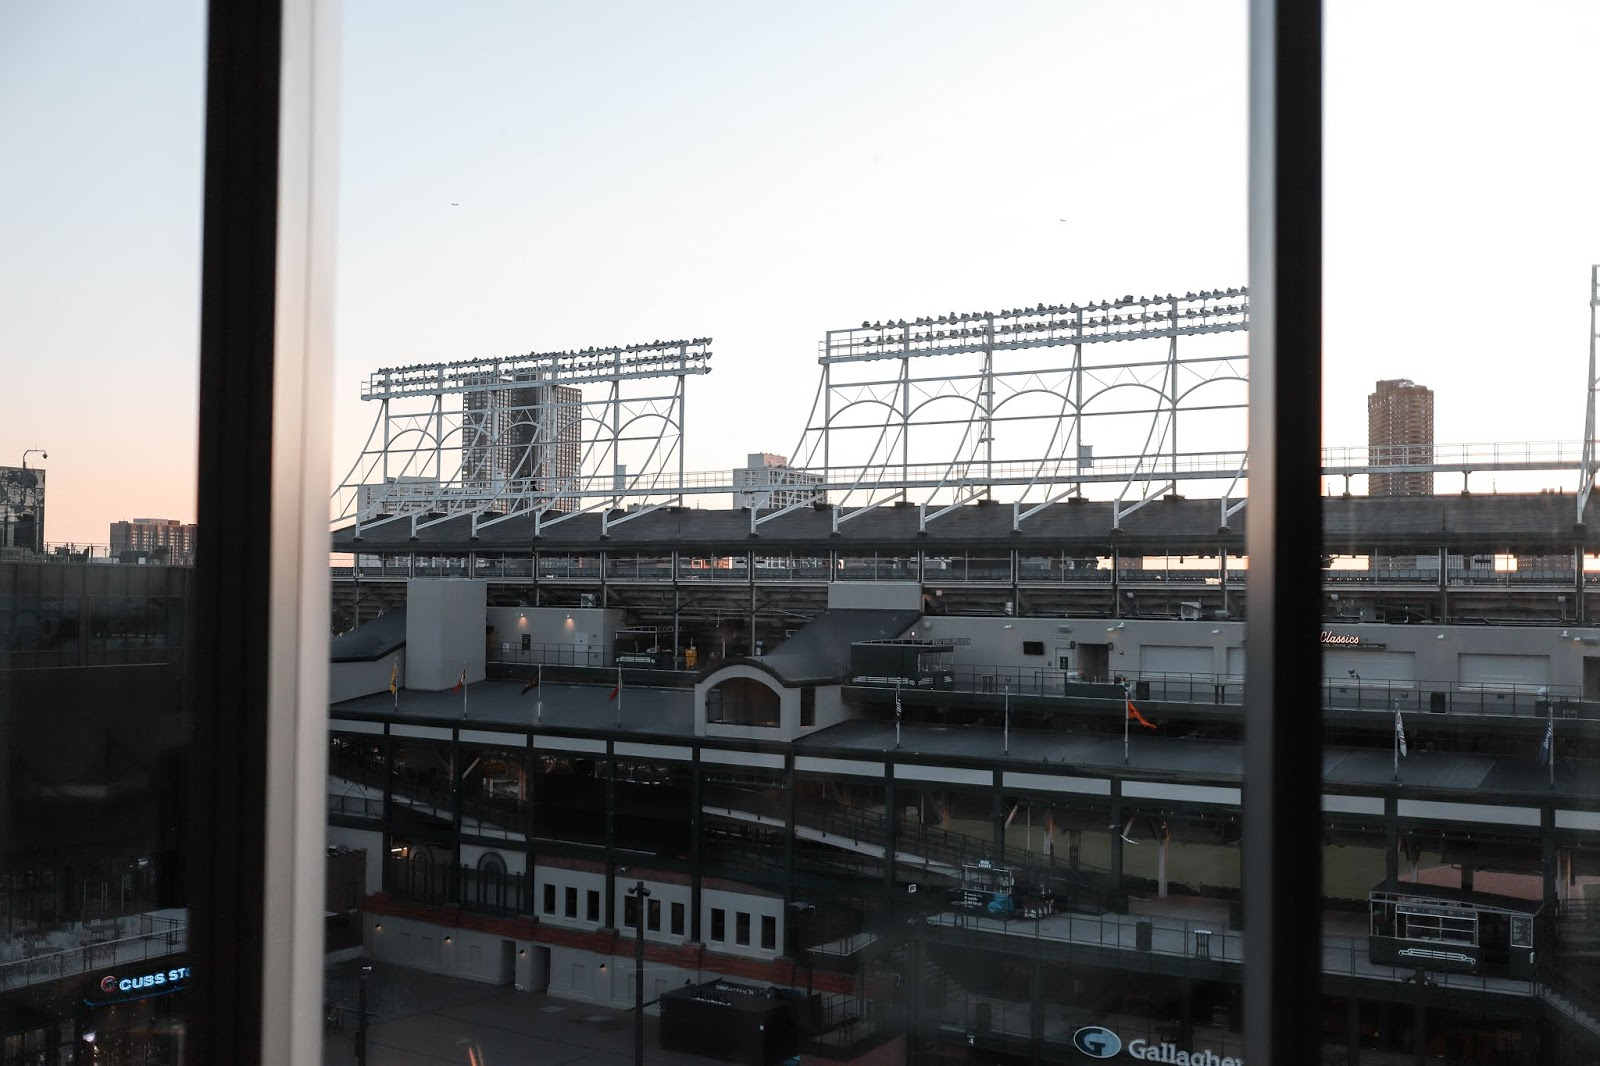 Hotel Zachary Room View of Rigley Field